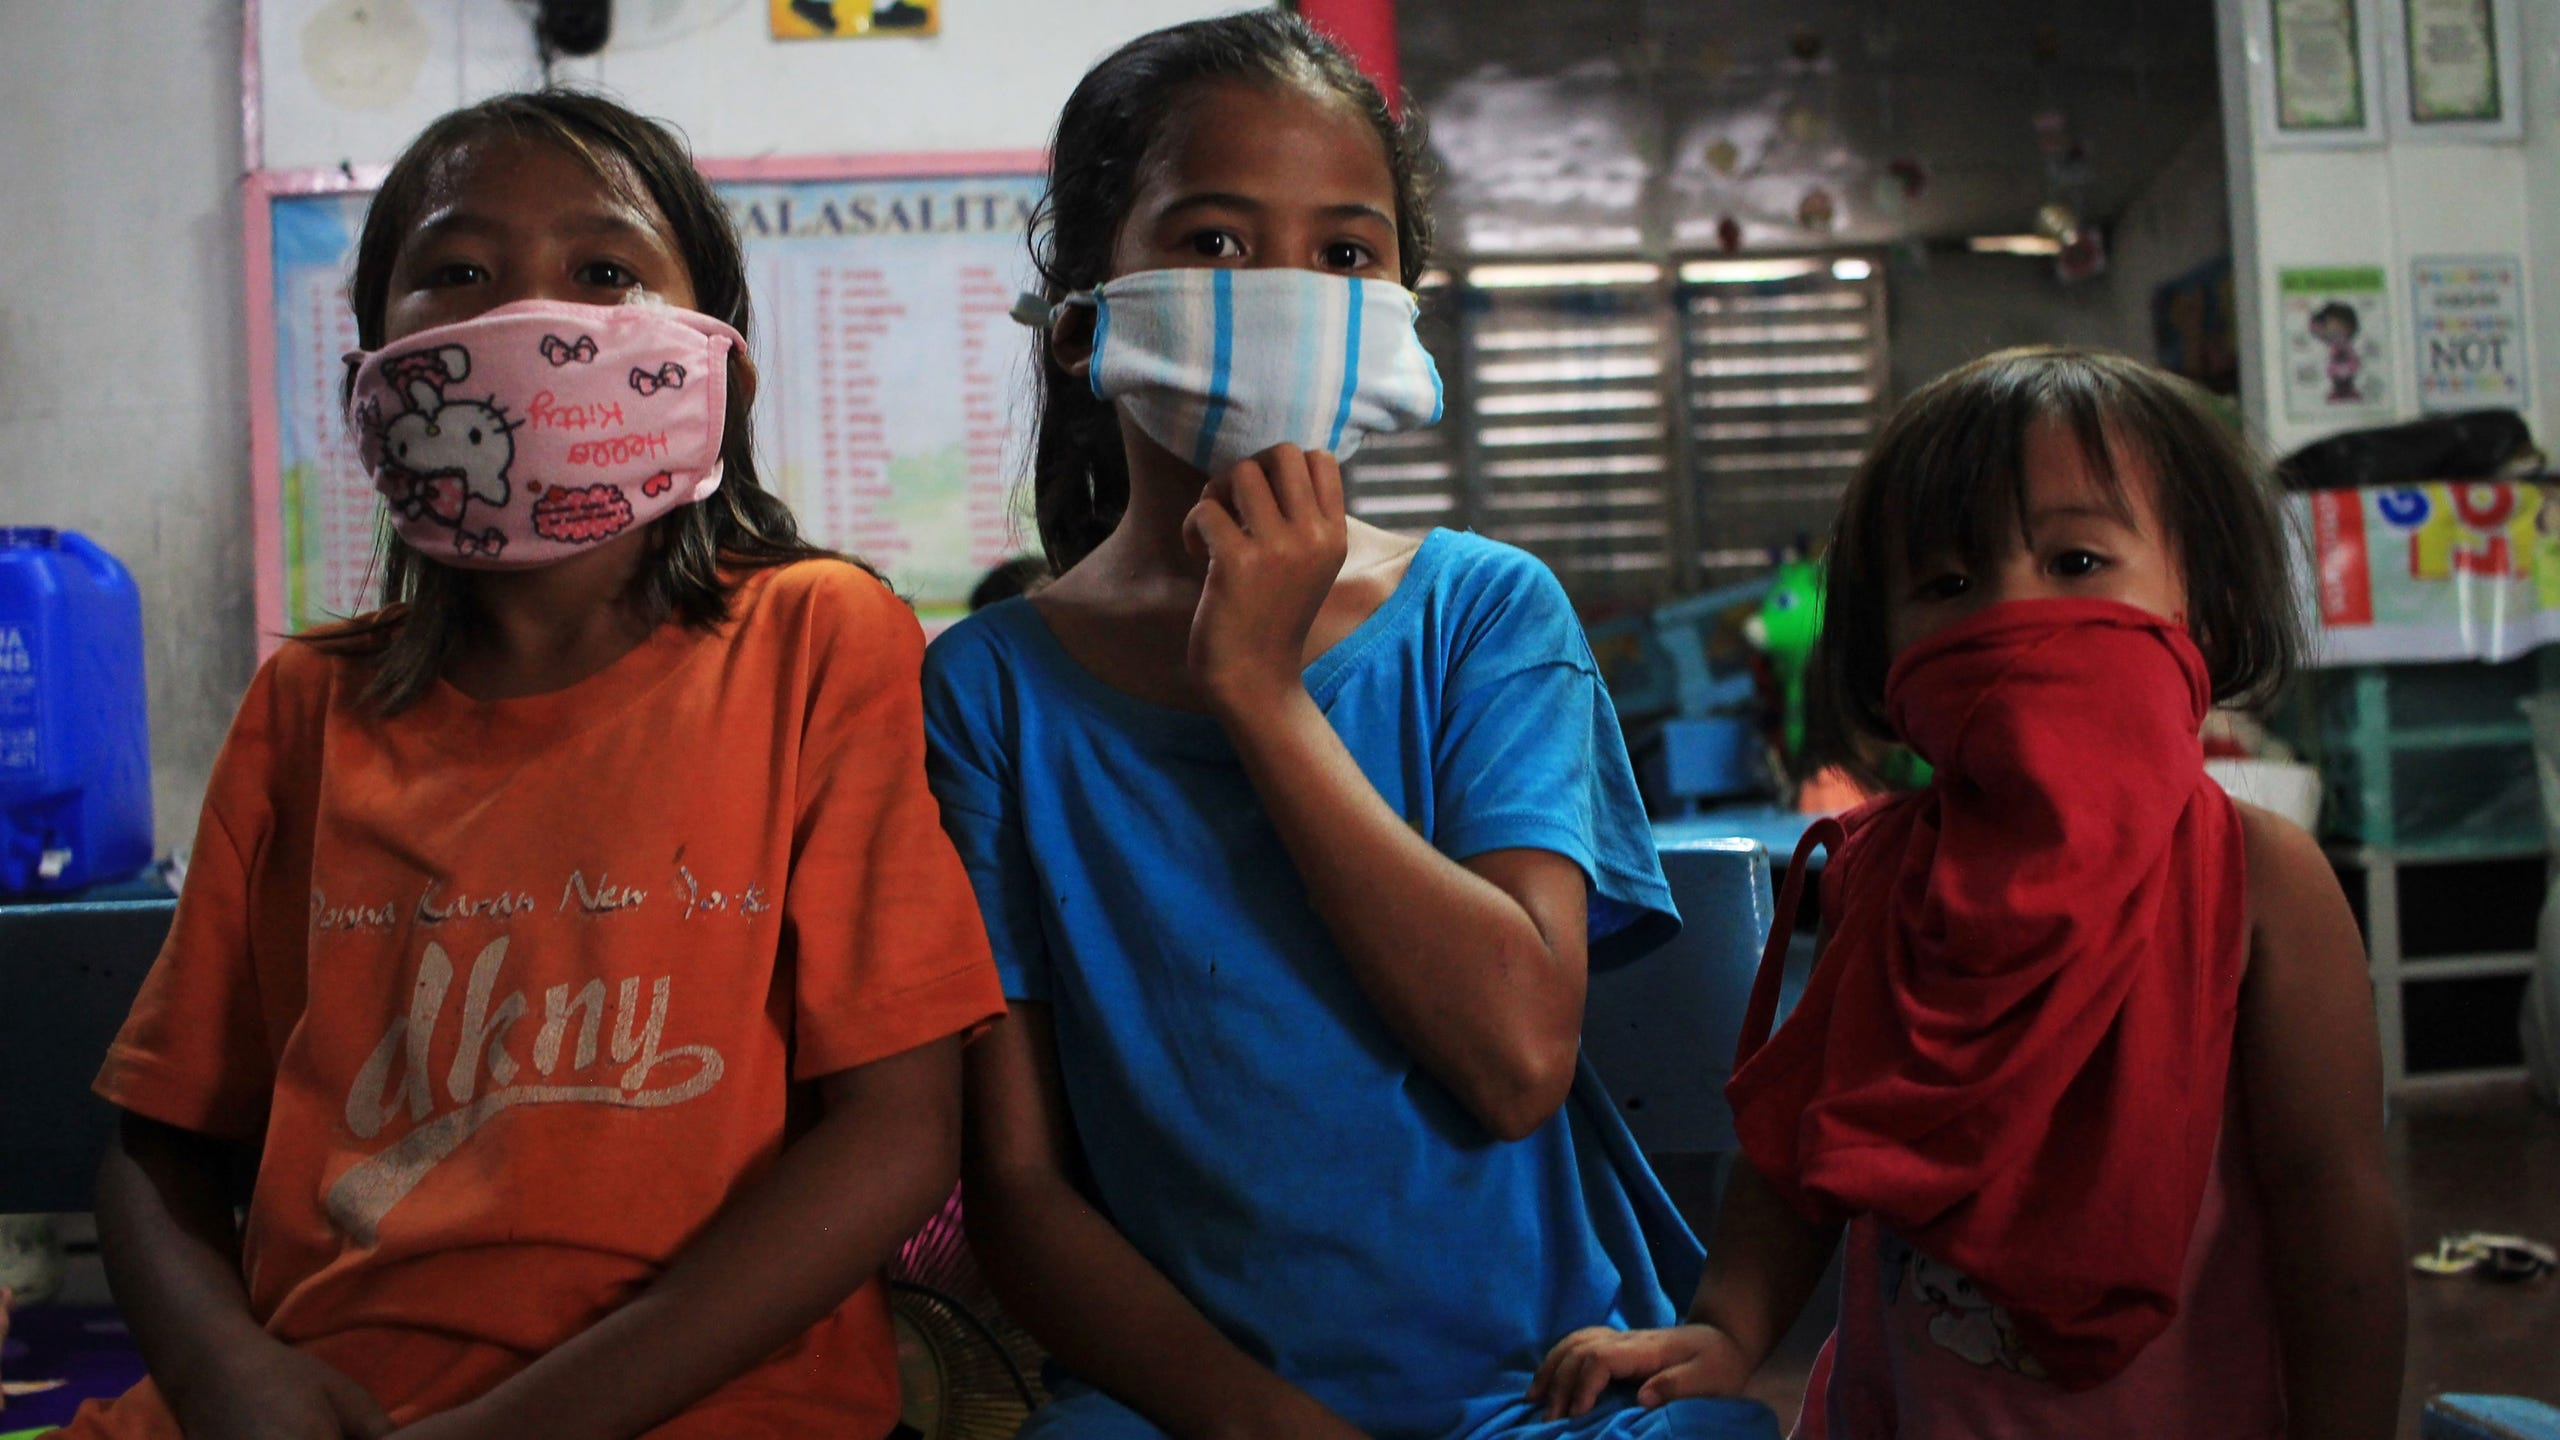 Coronavirus Mask Shortages Leave People With Makeshift Solutions